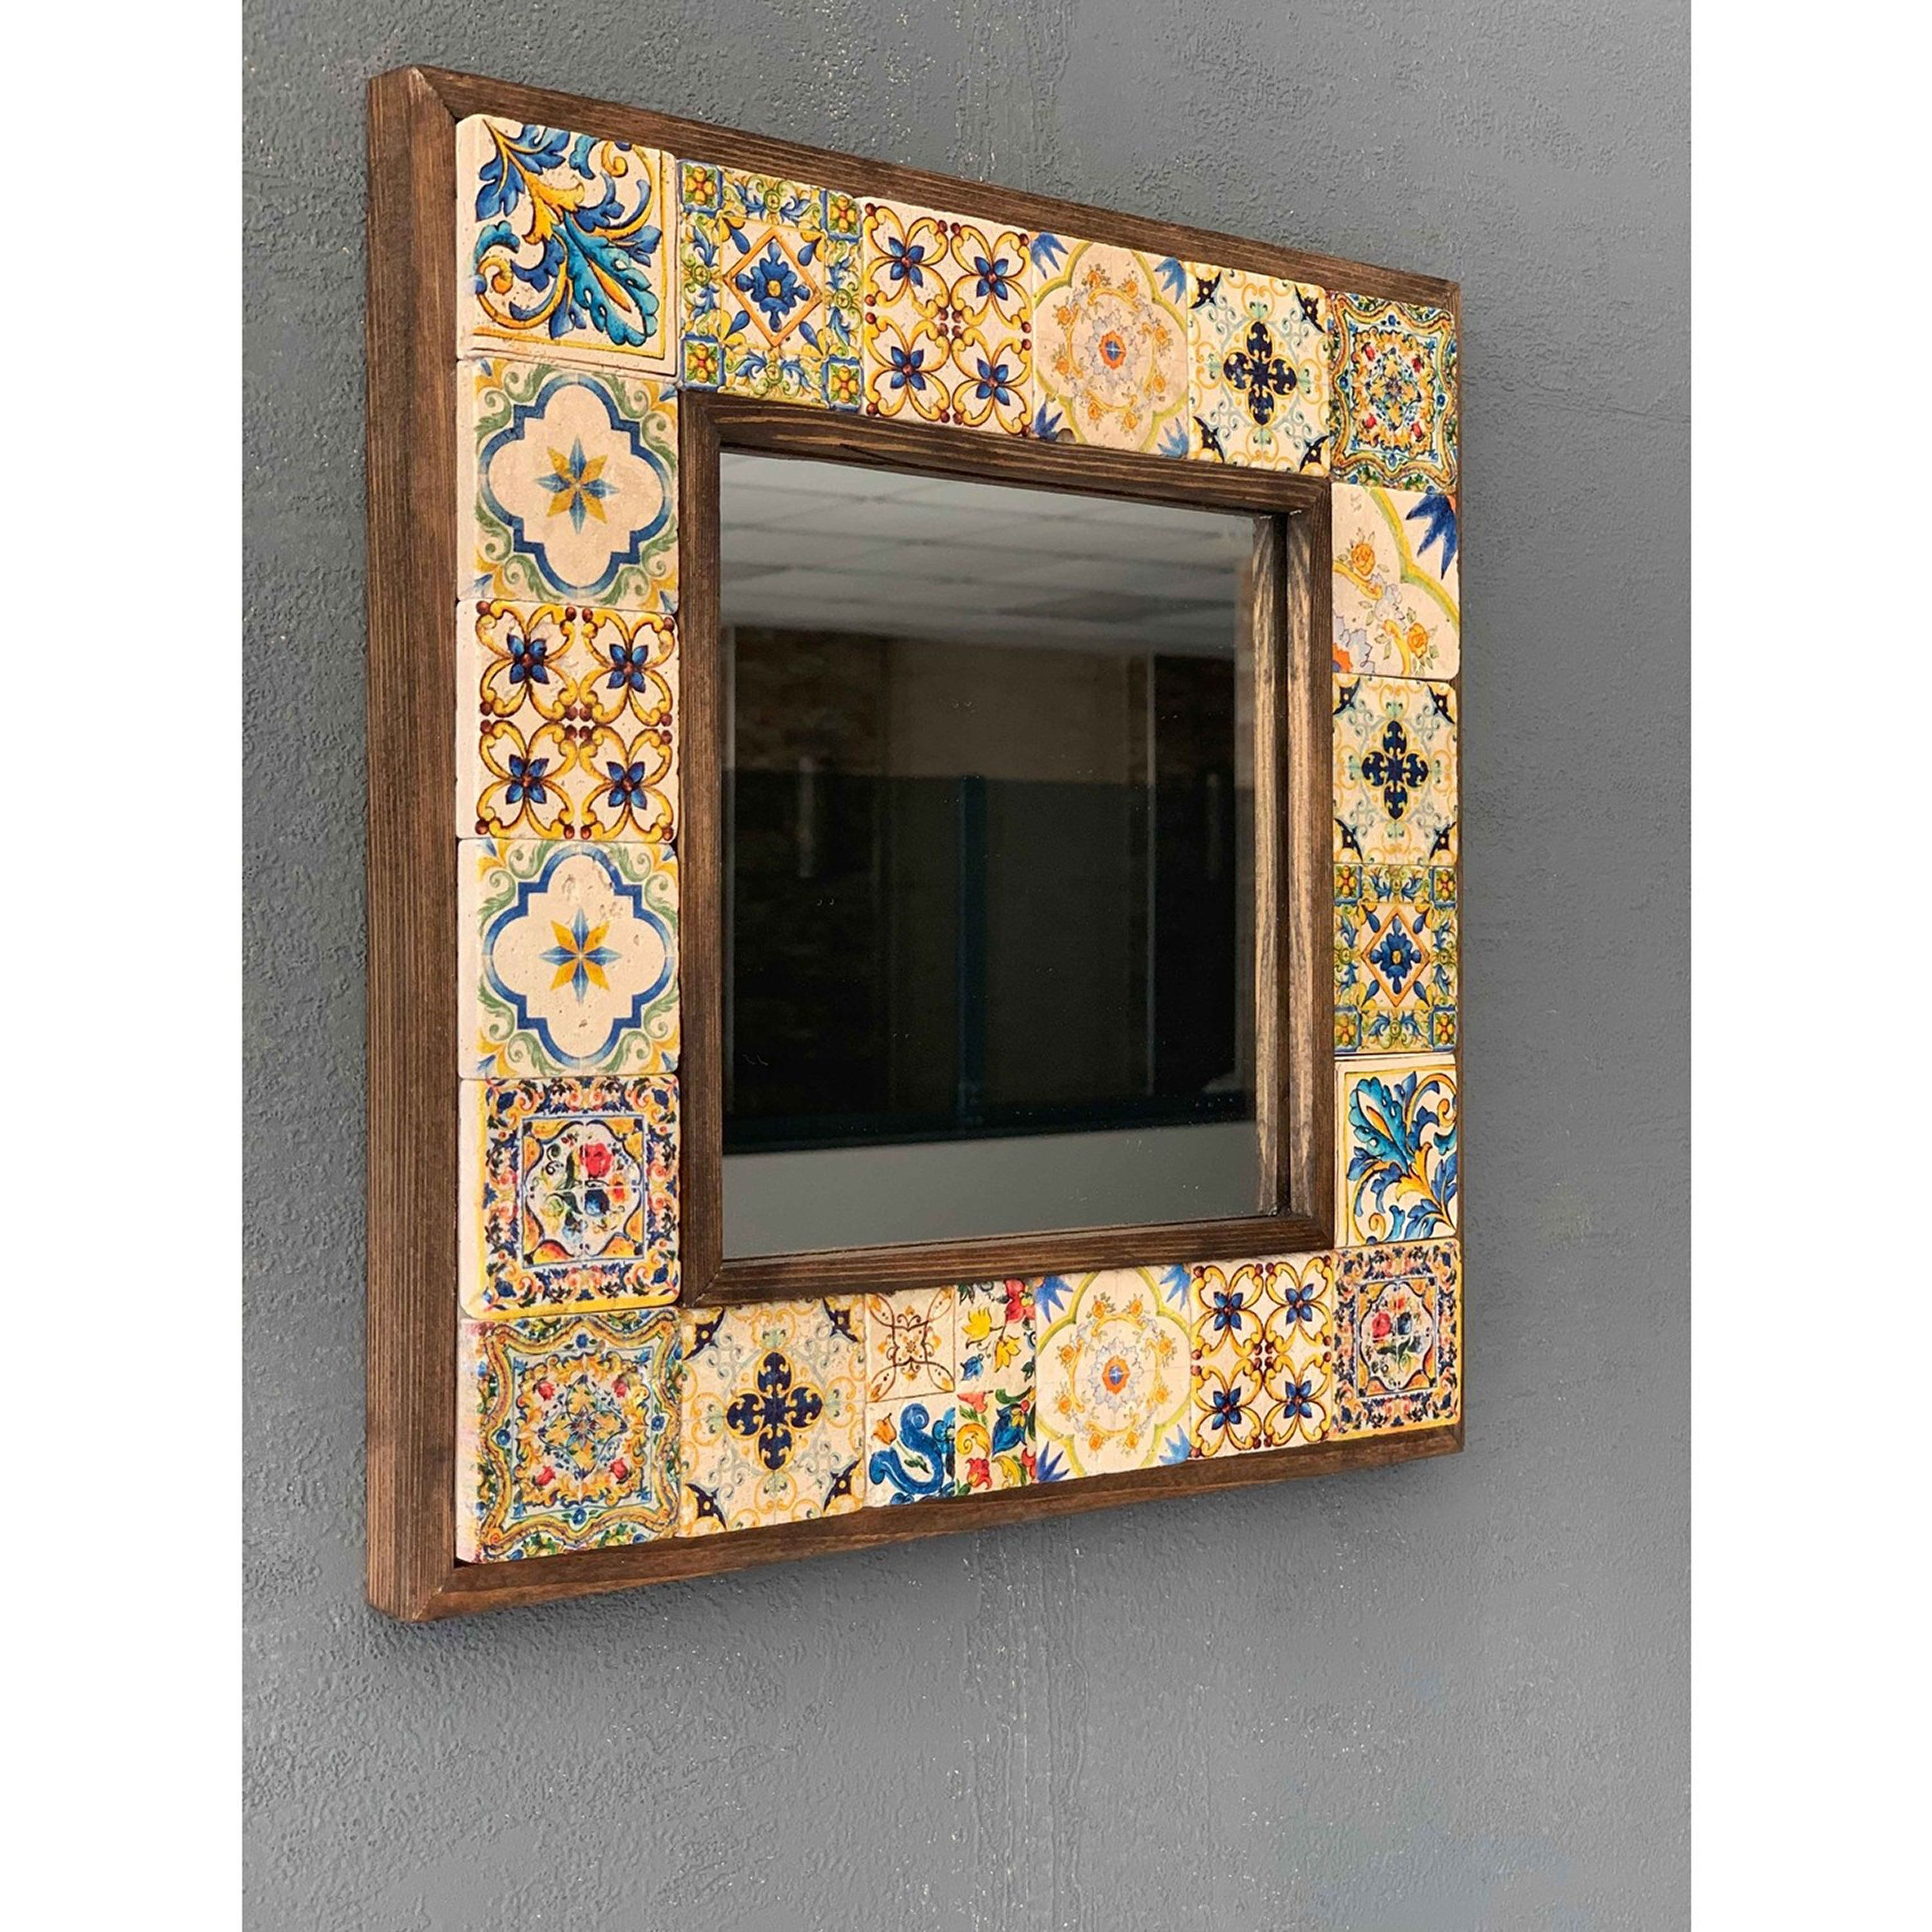 Boho mosaic mirror, travertine mosaic mirror, wall hanging mirror, handcrafted mirror, bohemian home decor,vegetable painted marble frame